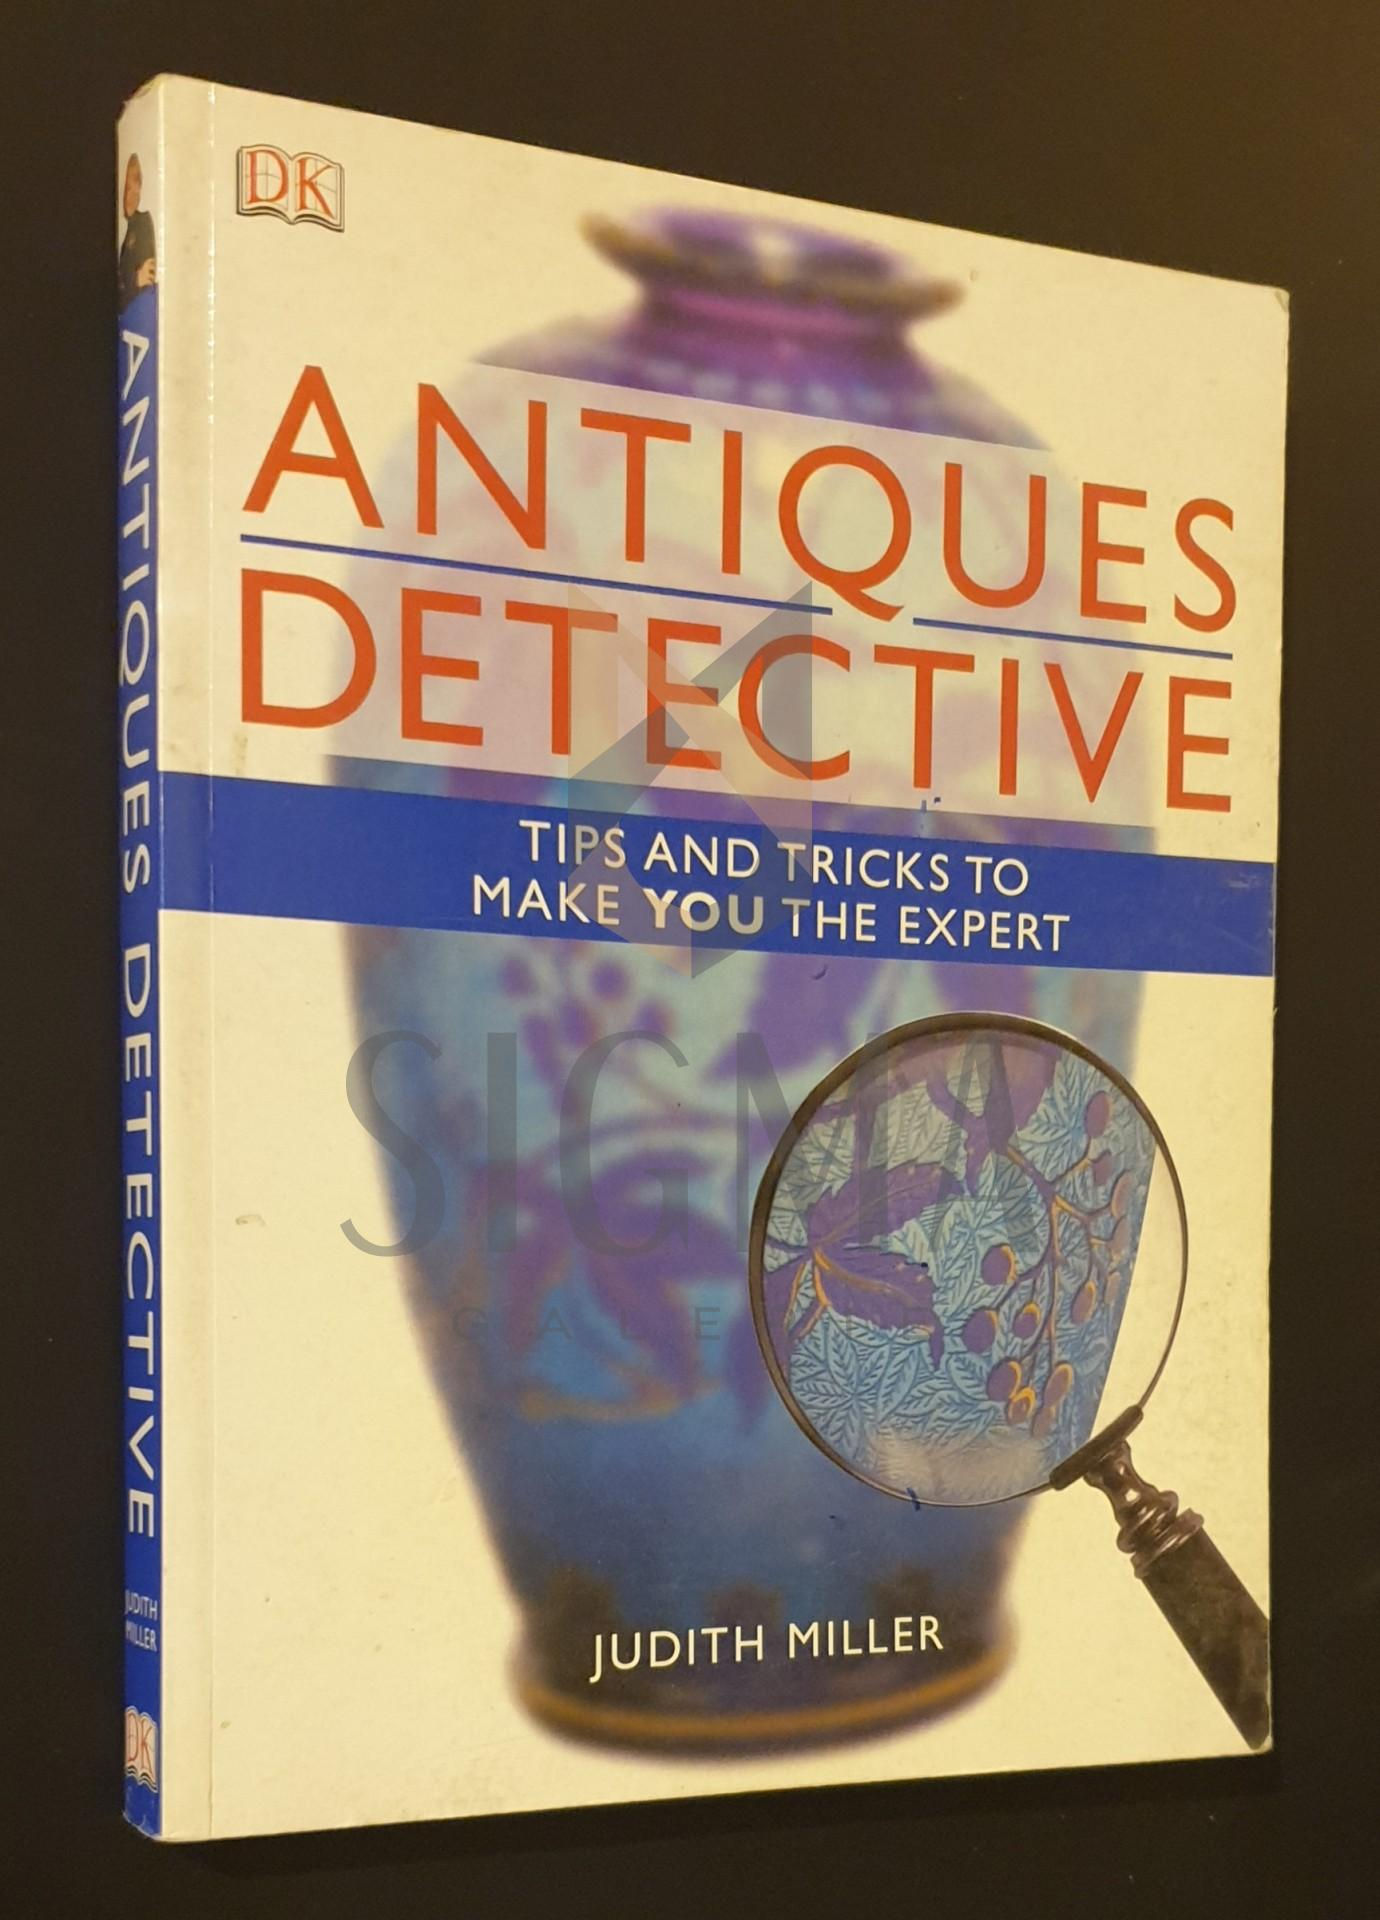 Antiques Detective  -  Tips and tricks to make you the expert